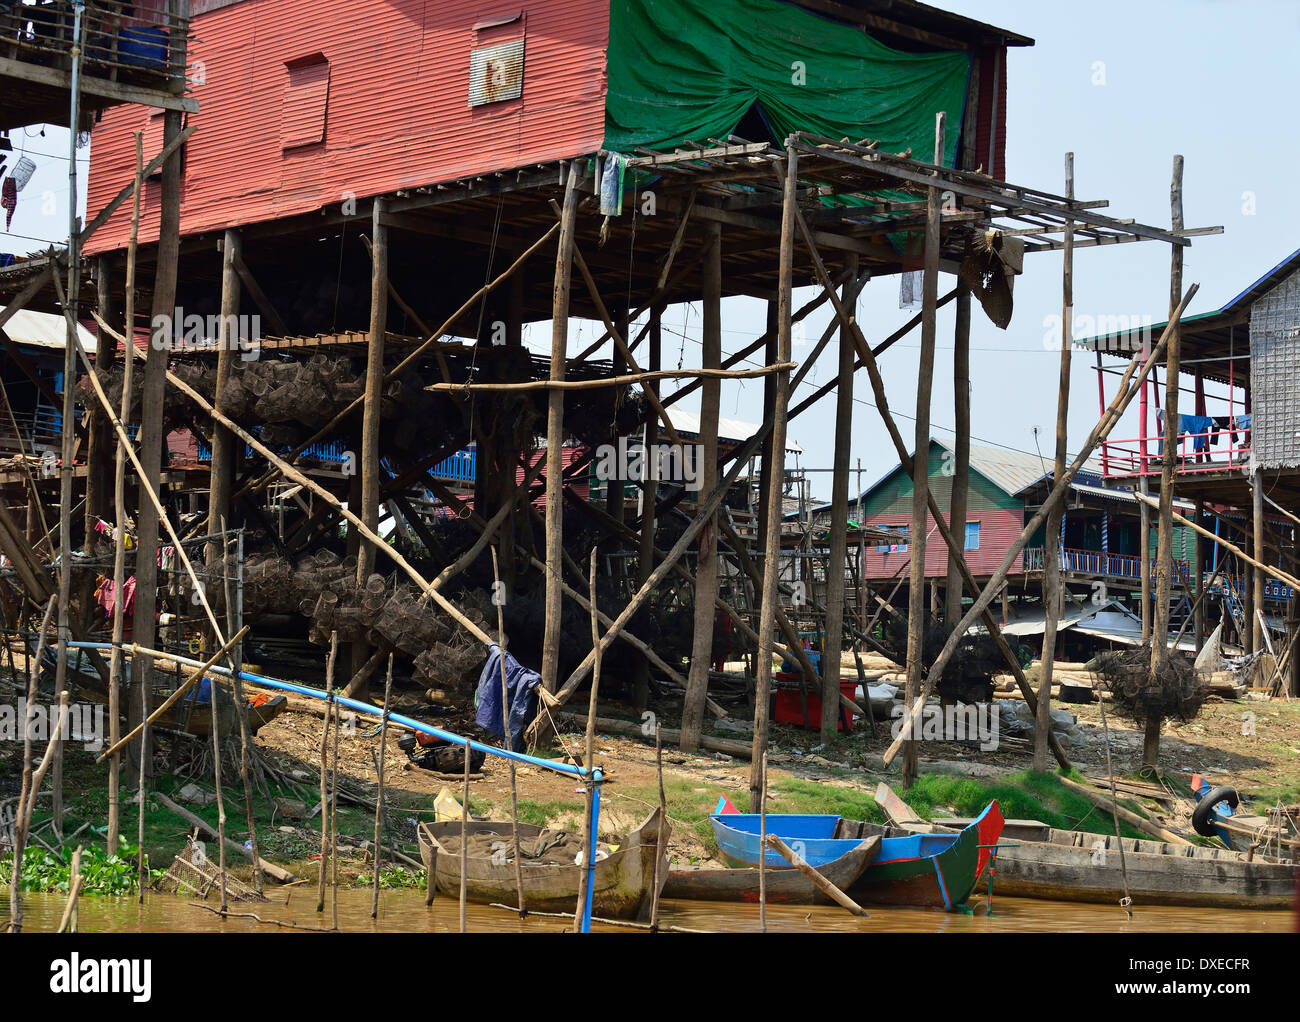 houses built on wooden poles to avoid the high range of water from Tonle Sap lake, during the winter months, Cambodia - Stock Image